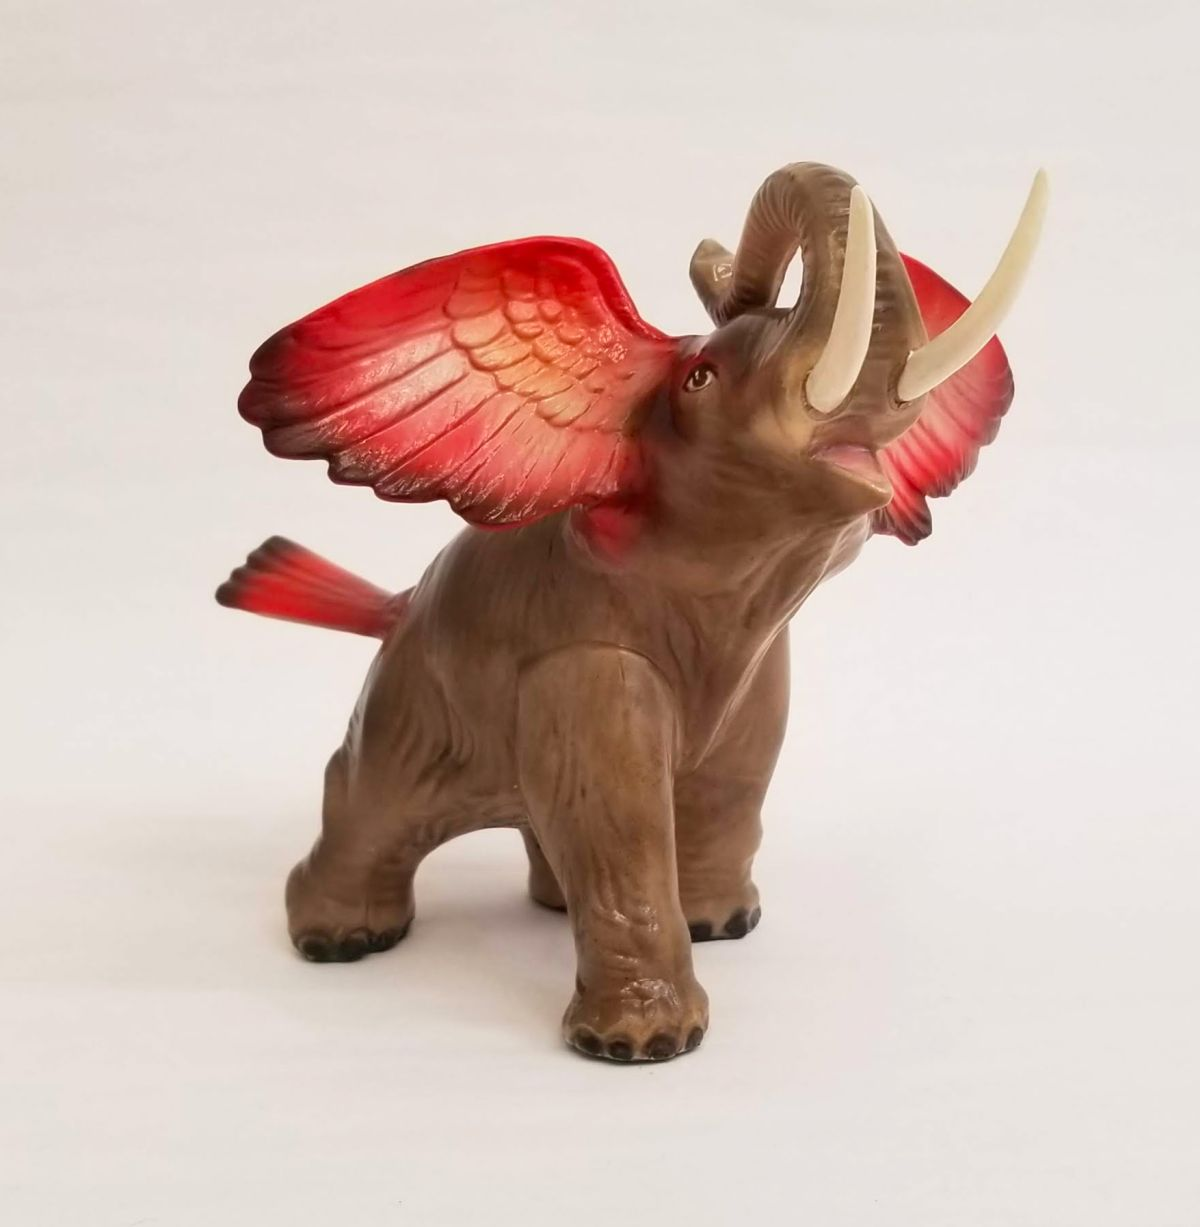 funny ceramic sculpture winged elephant debra broz